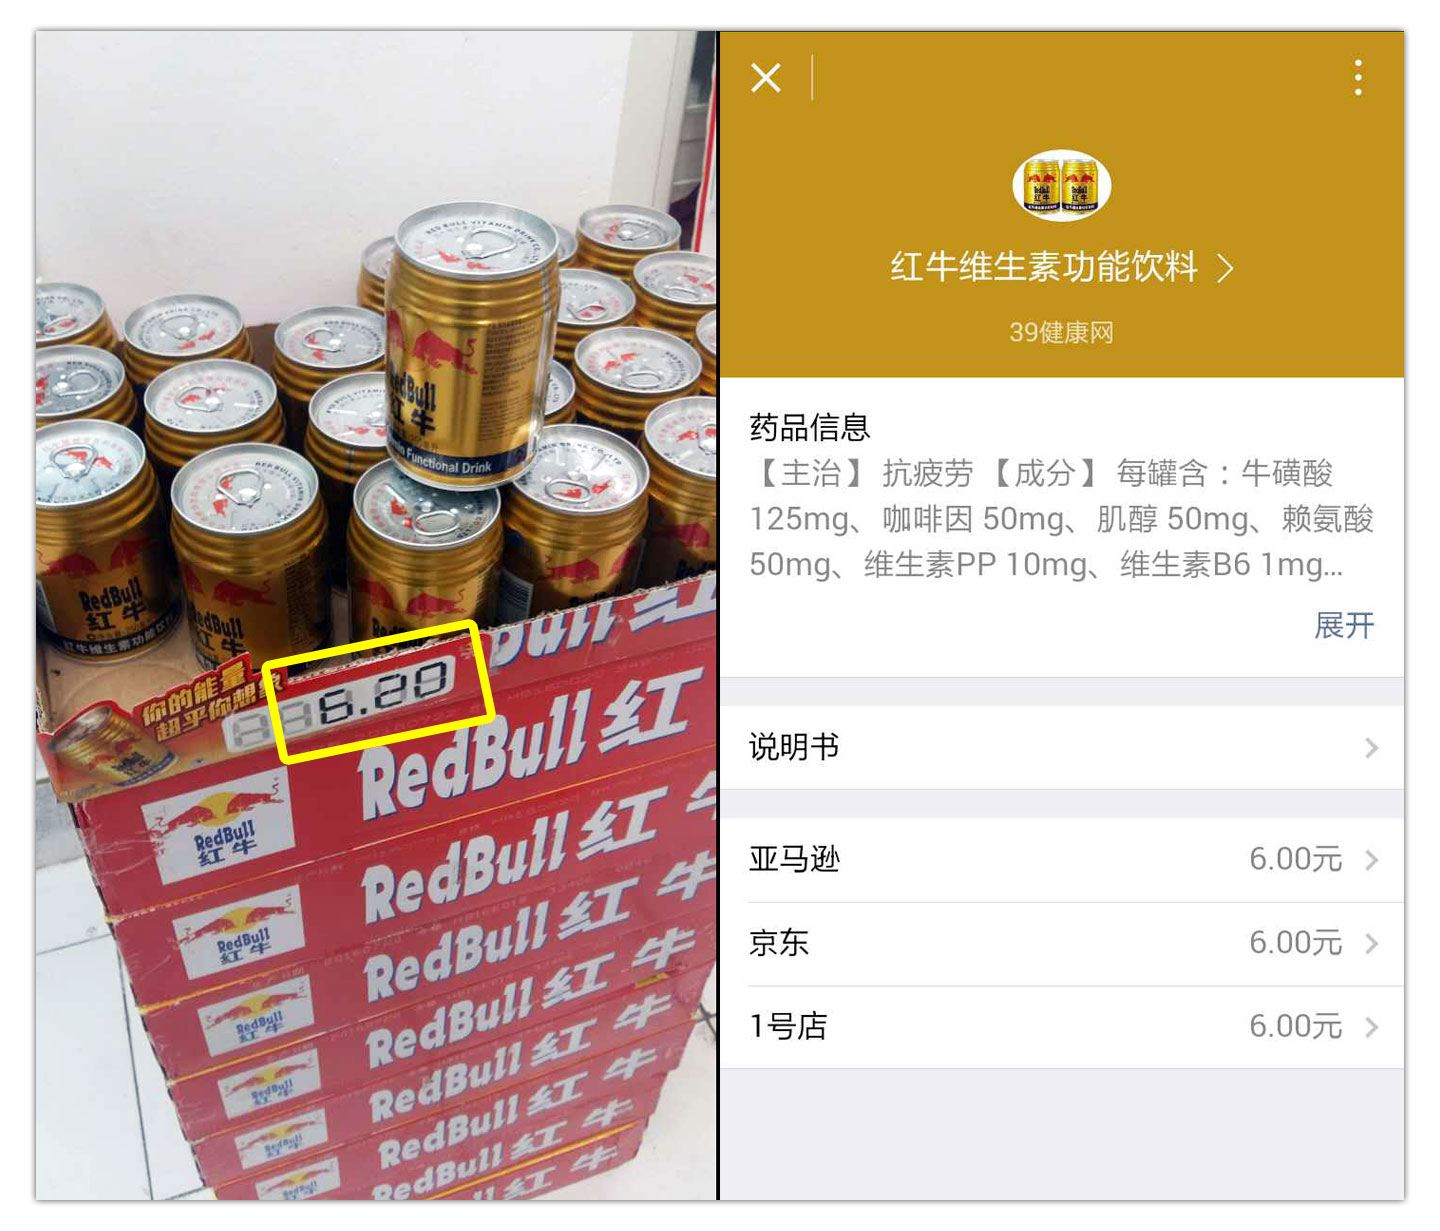 WeChat Barcode Scanning Red Bull